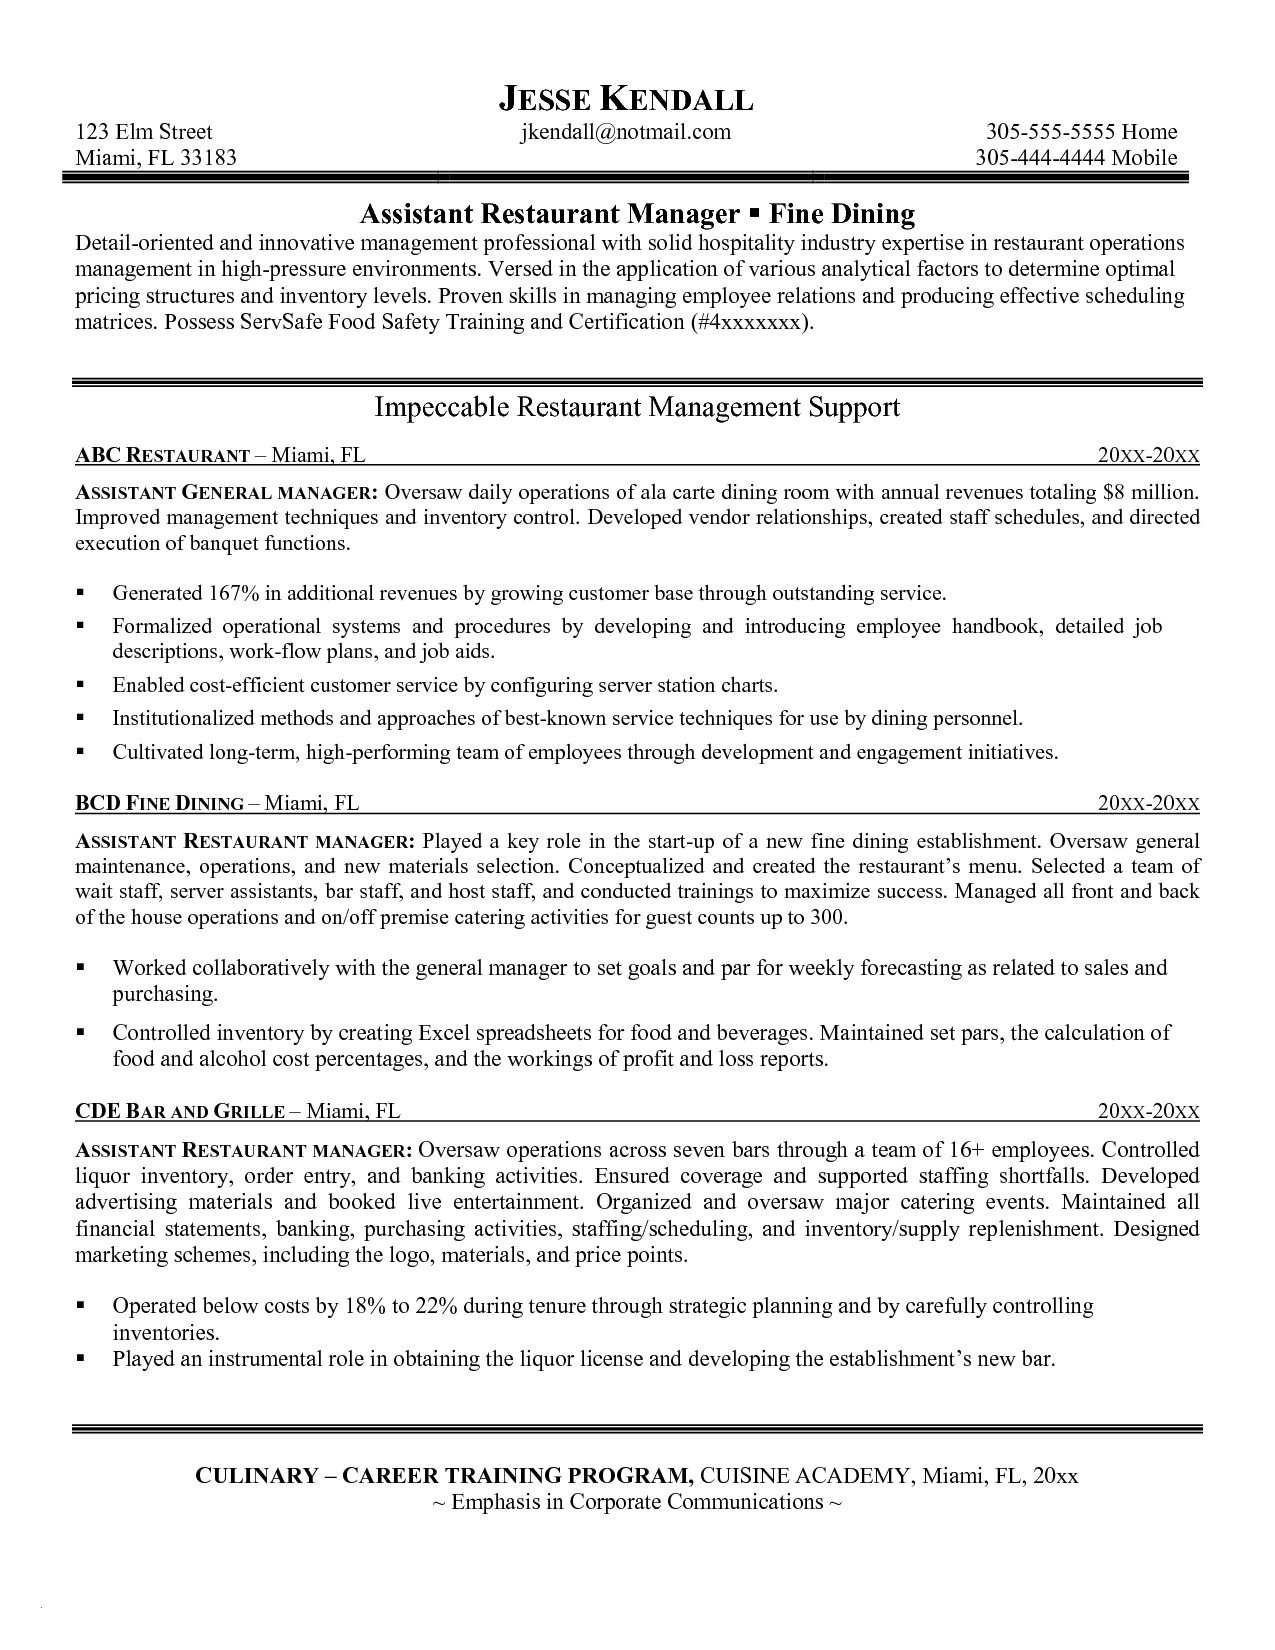 Operation Manager Resume Template - Restaurant General Manager Resume Paragraphrewriter